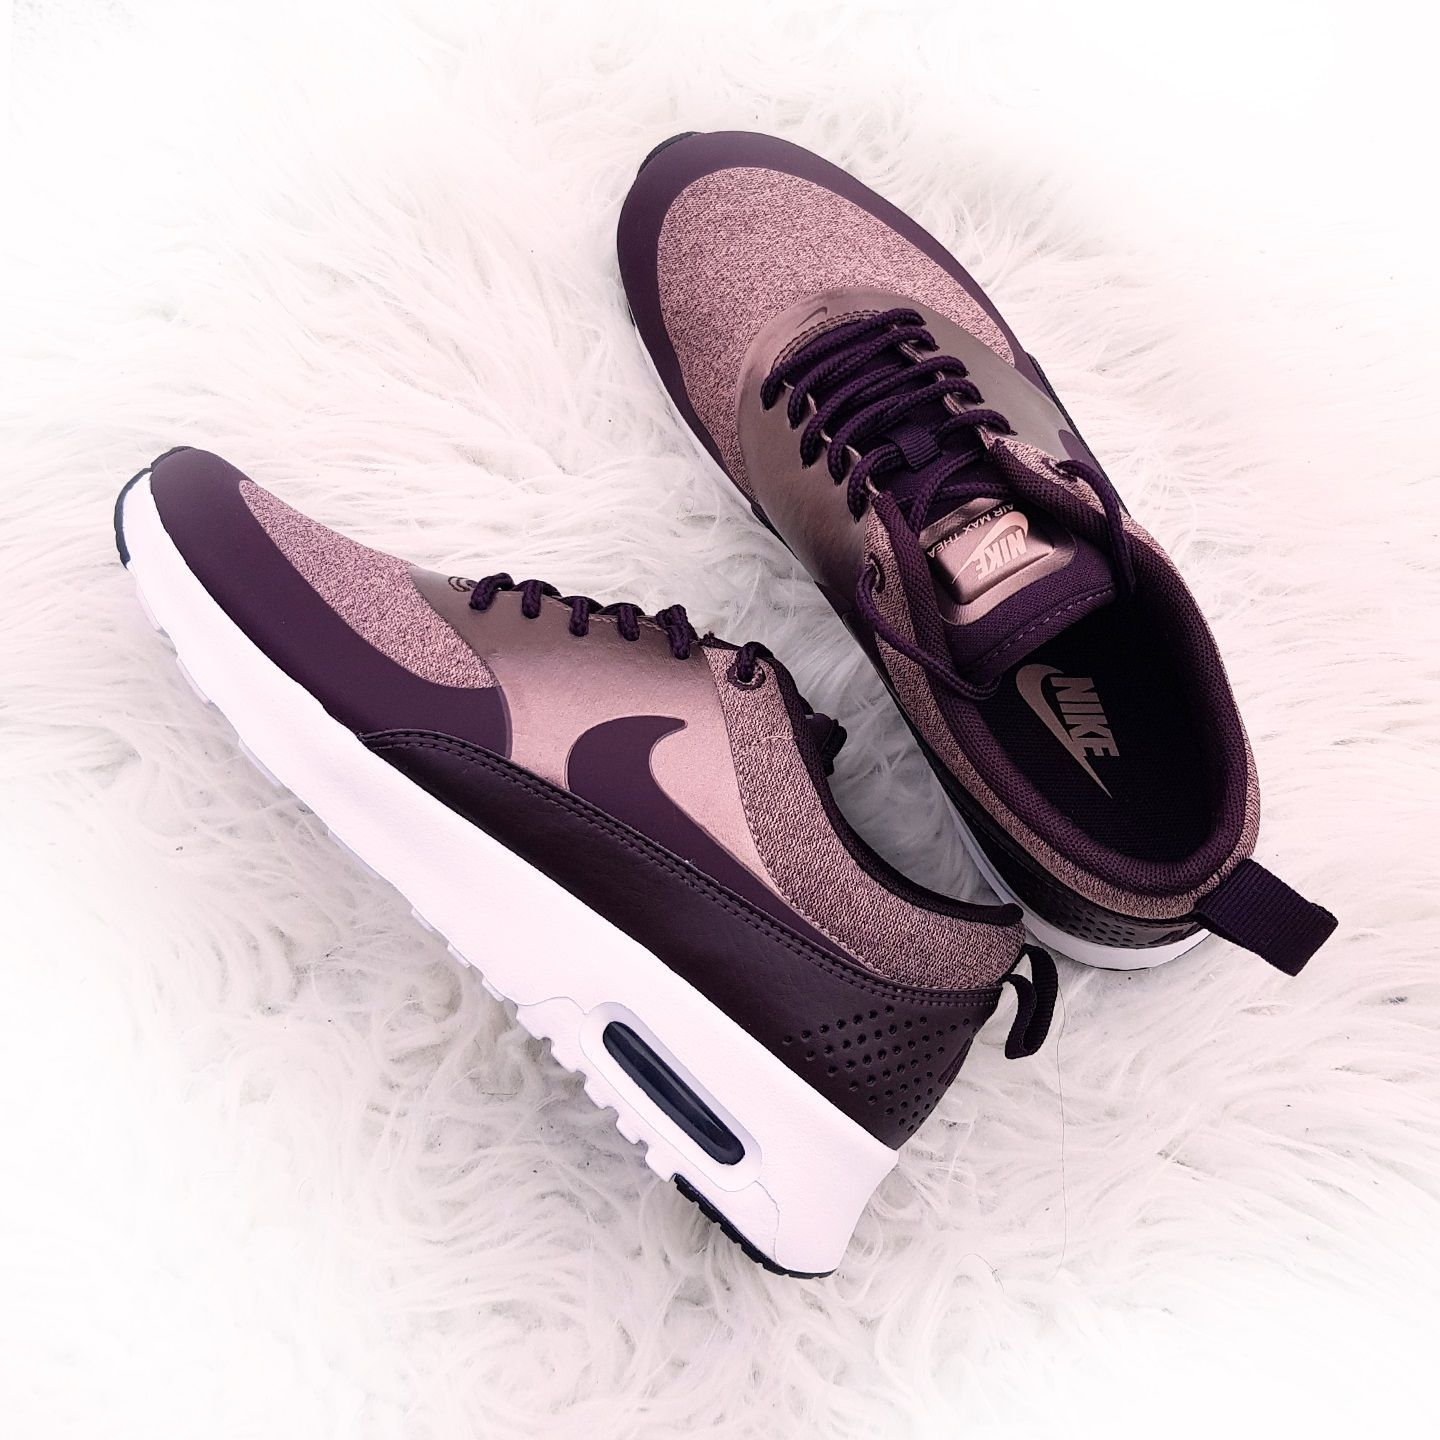 6922af16a1 Nike Air Max Thea Knit - Port Wine/Particle Pink/Schwarz/Metallic Mahogany